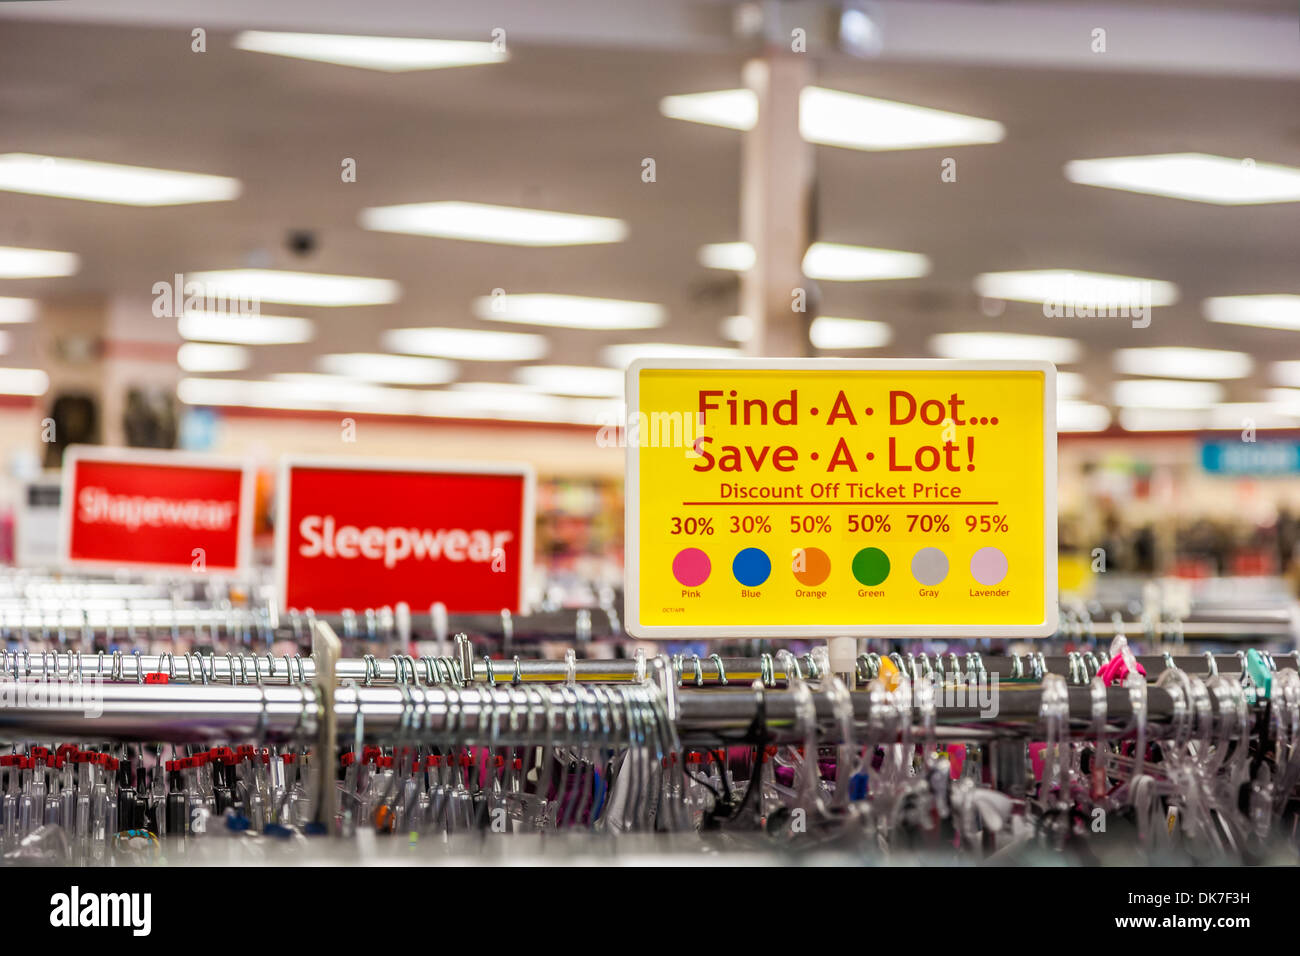 Sign indicates discounts on clothing in retail clothing bargain store - Stock Image